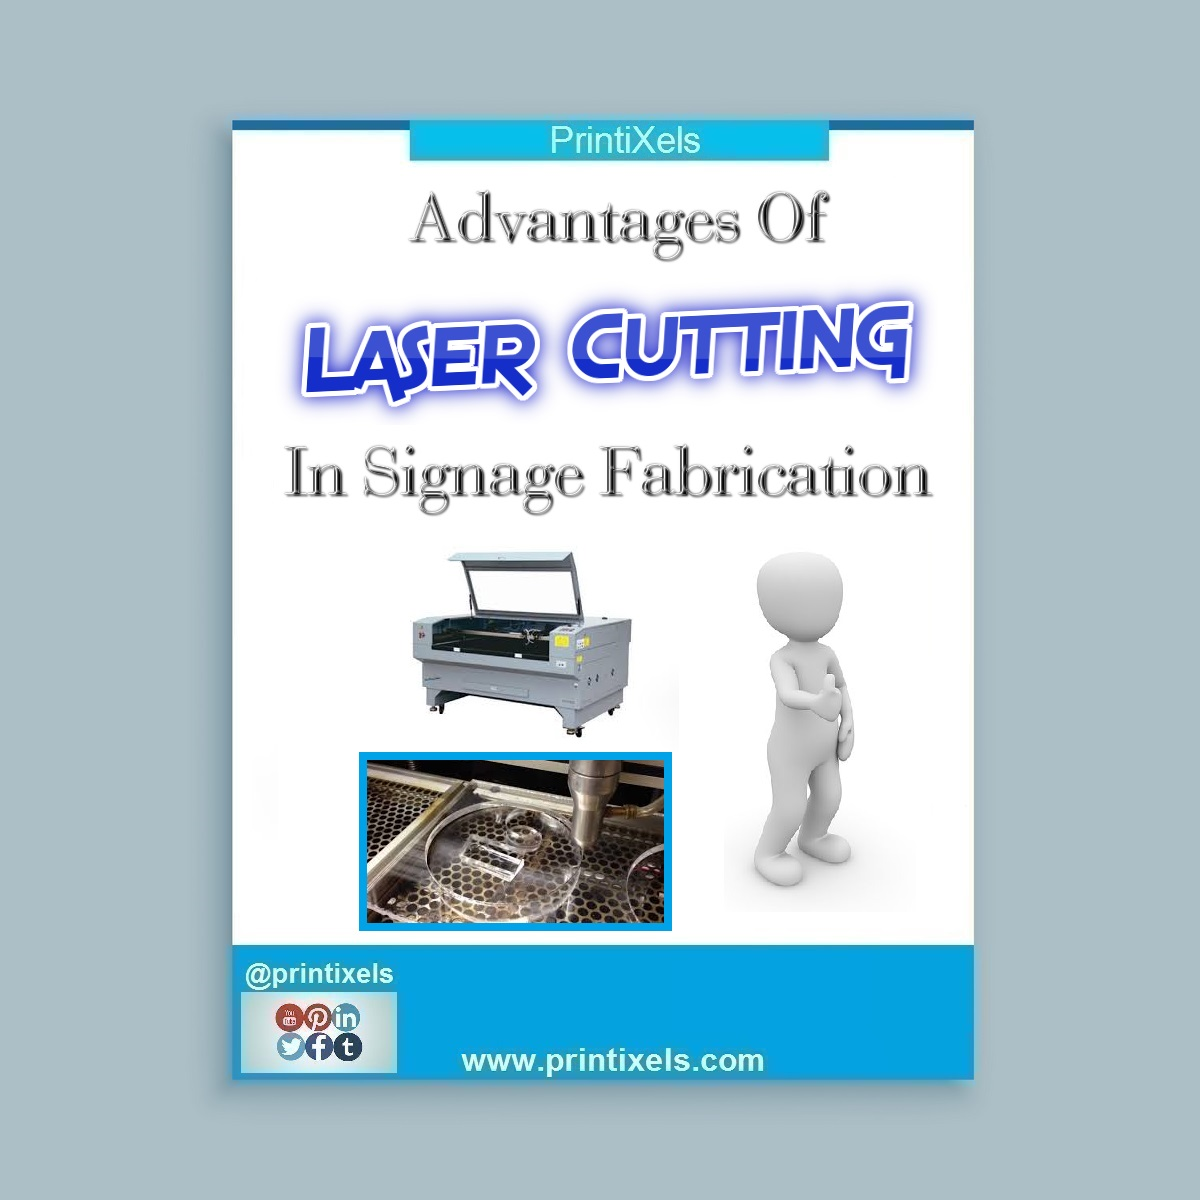 Advantages Of Laser Cutting In Signage Fabrication